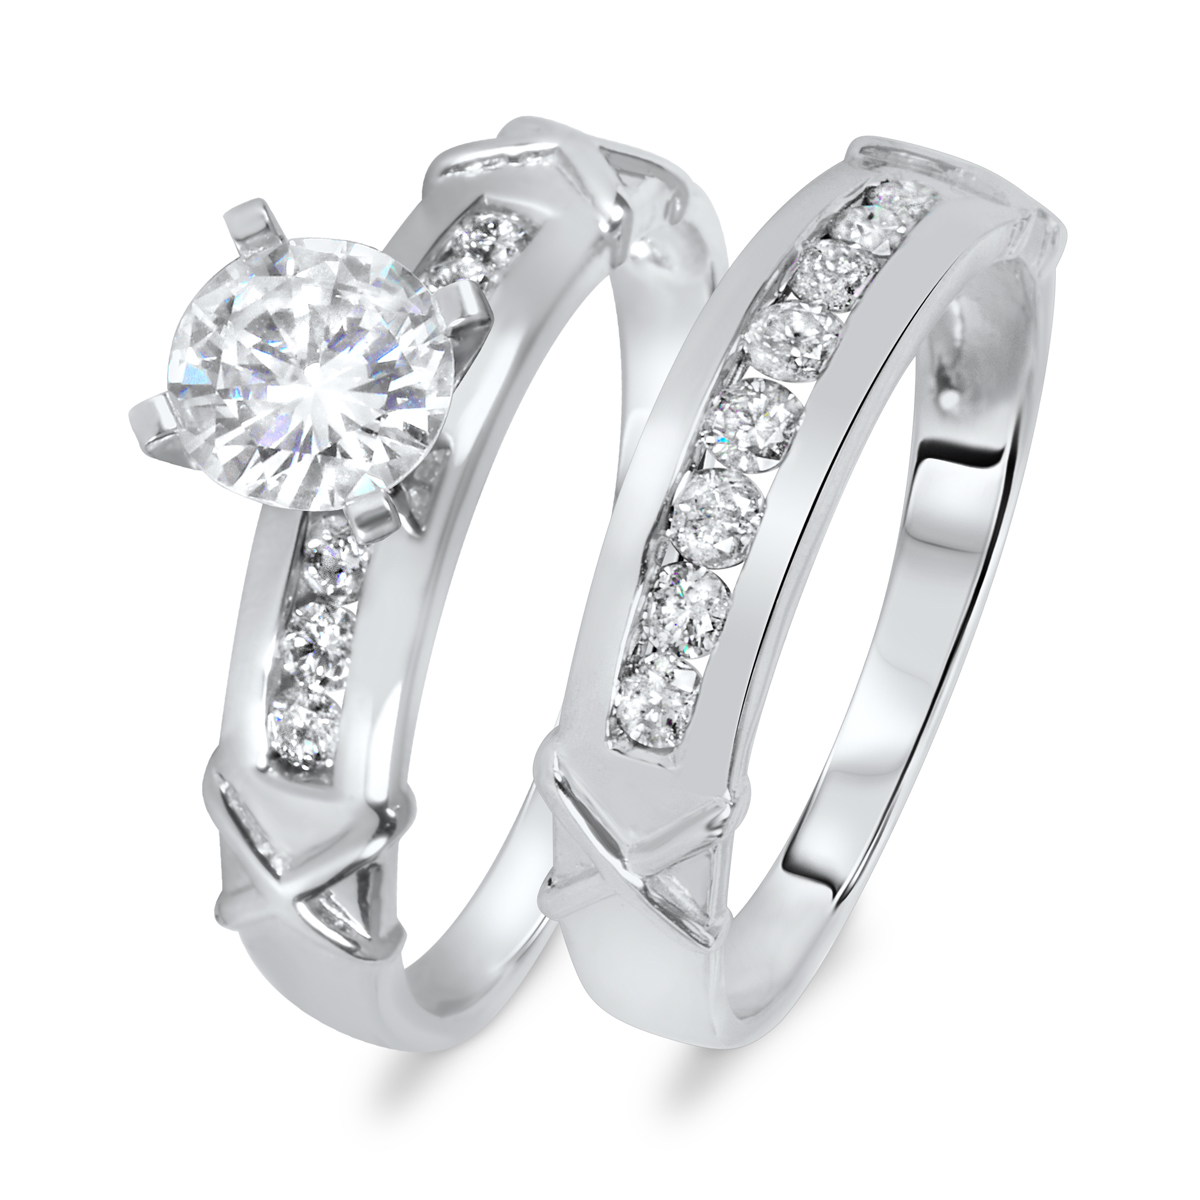 1 1/5 CT. T.W. Diamond Women's Bridal Wedding Ring Set 10K White Gold